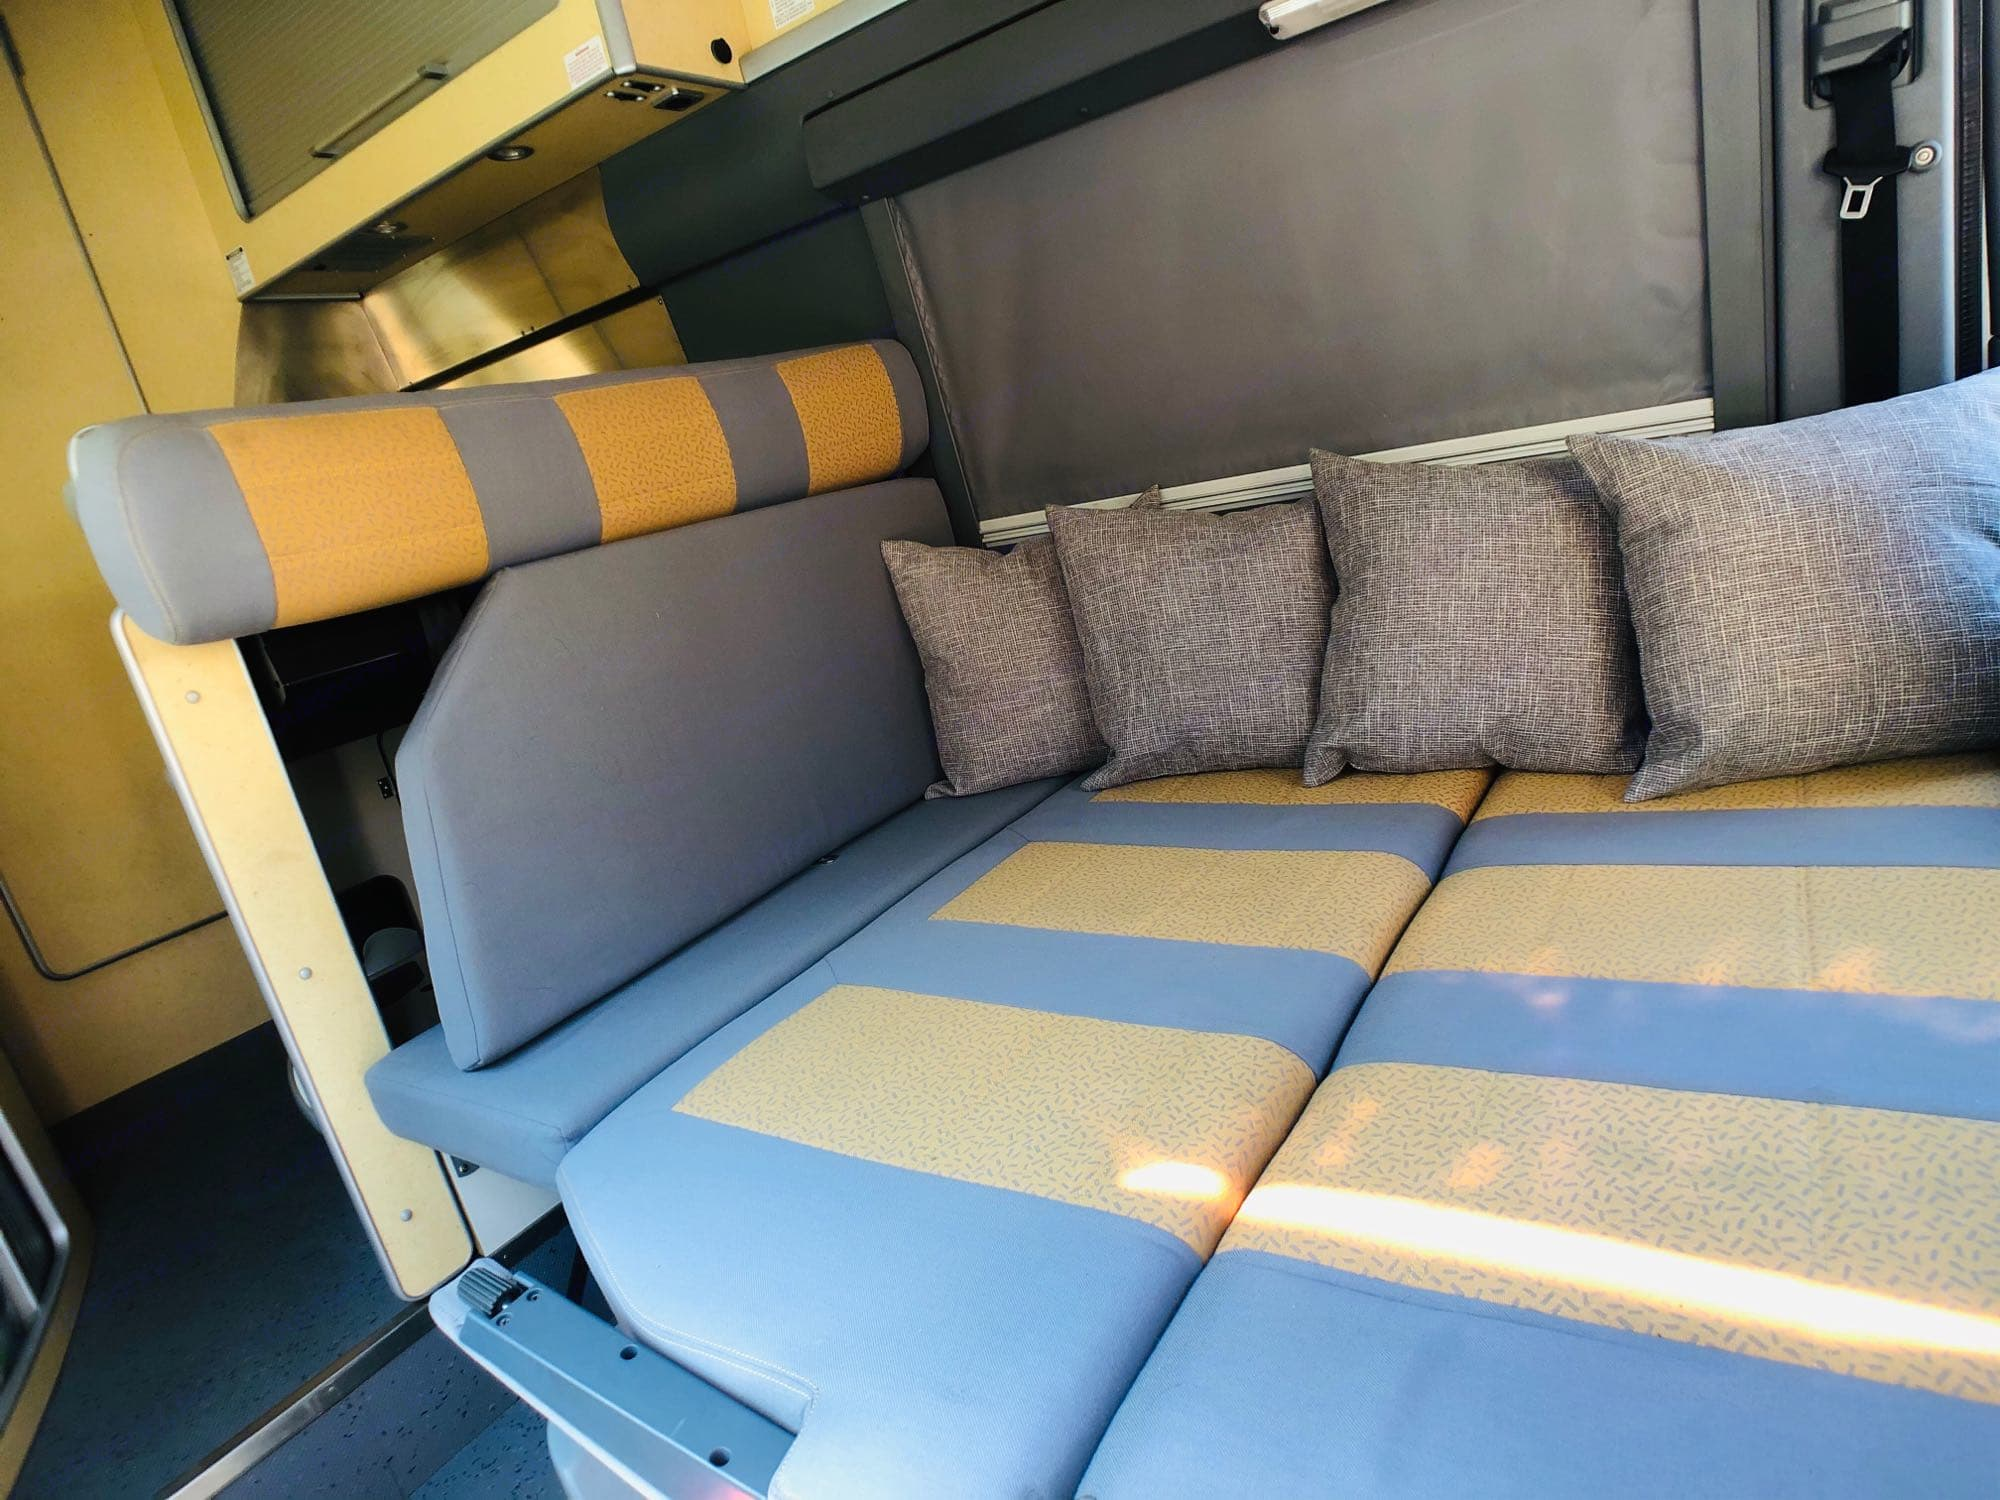 Can turn to Twin Bed. Airstream Sprinter 2005